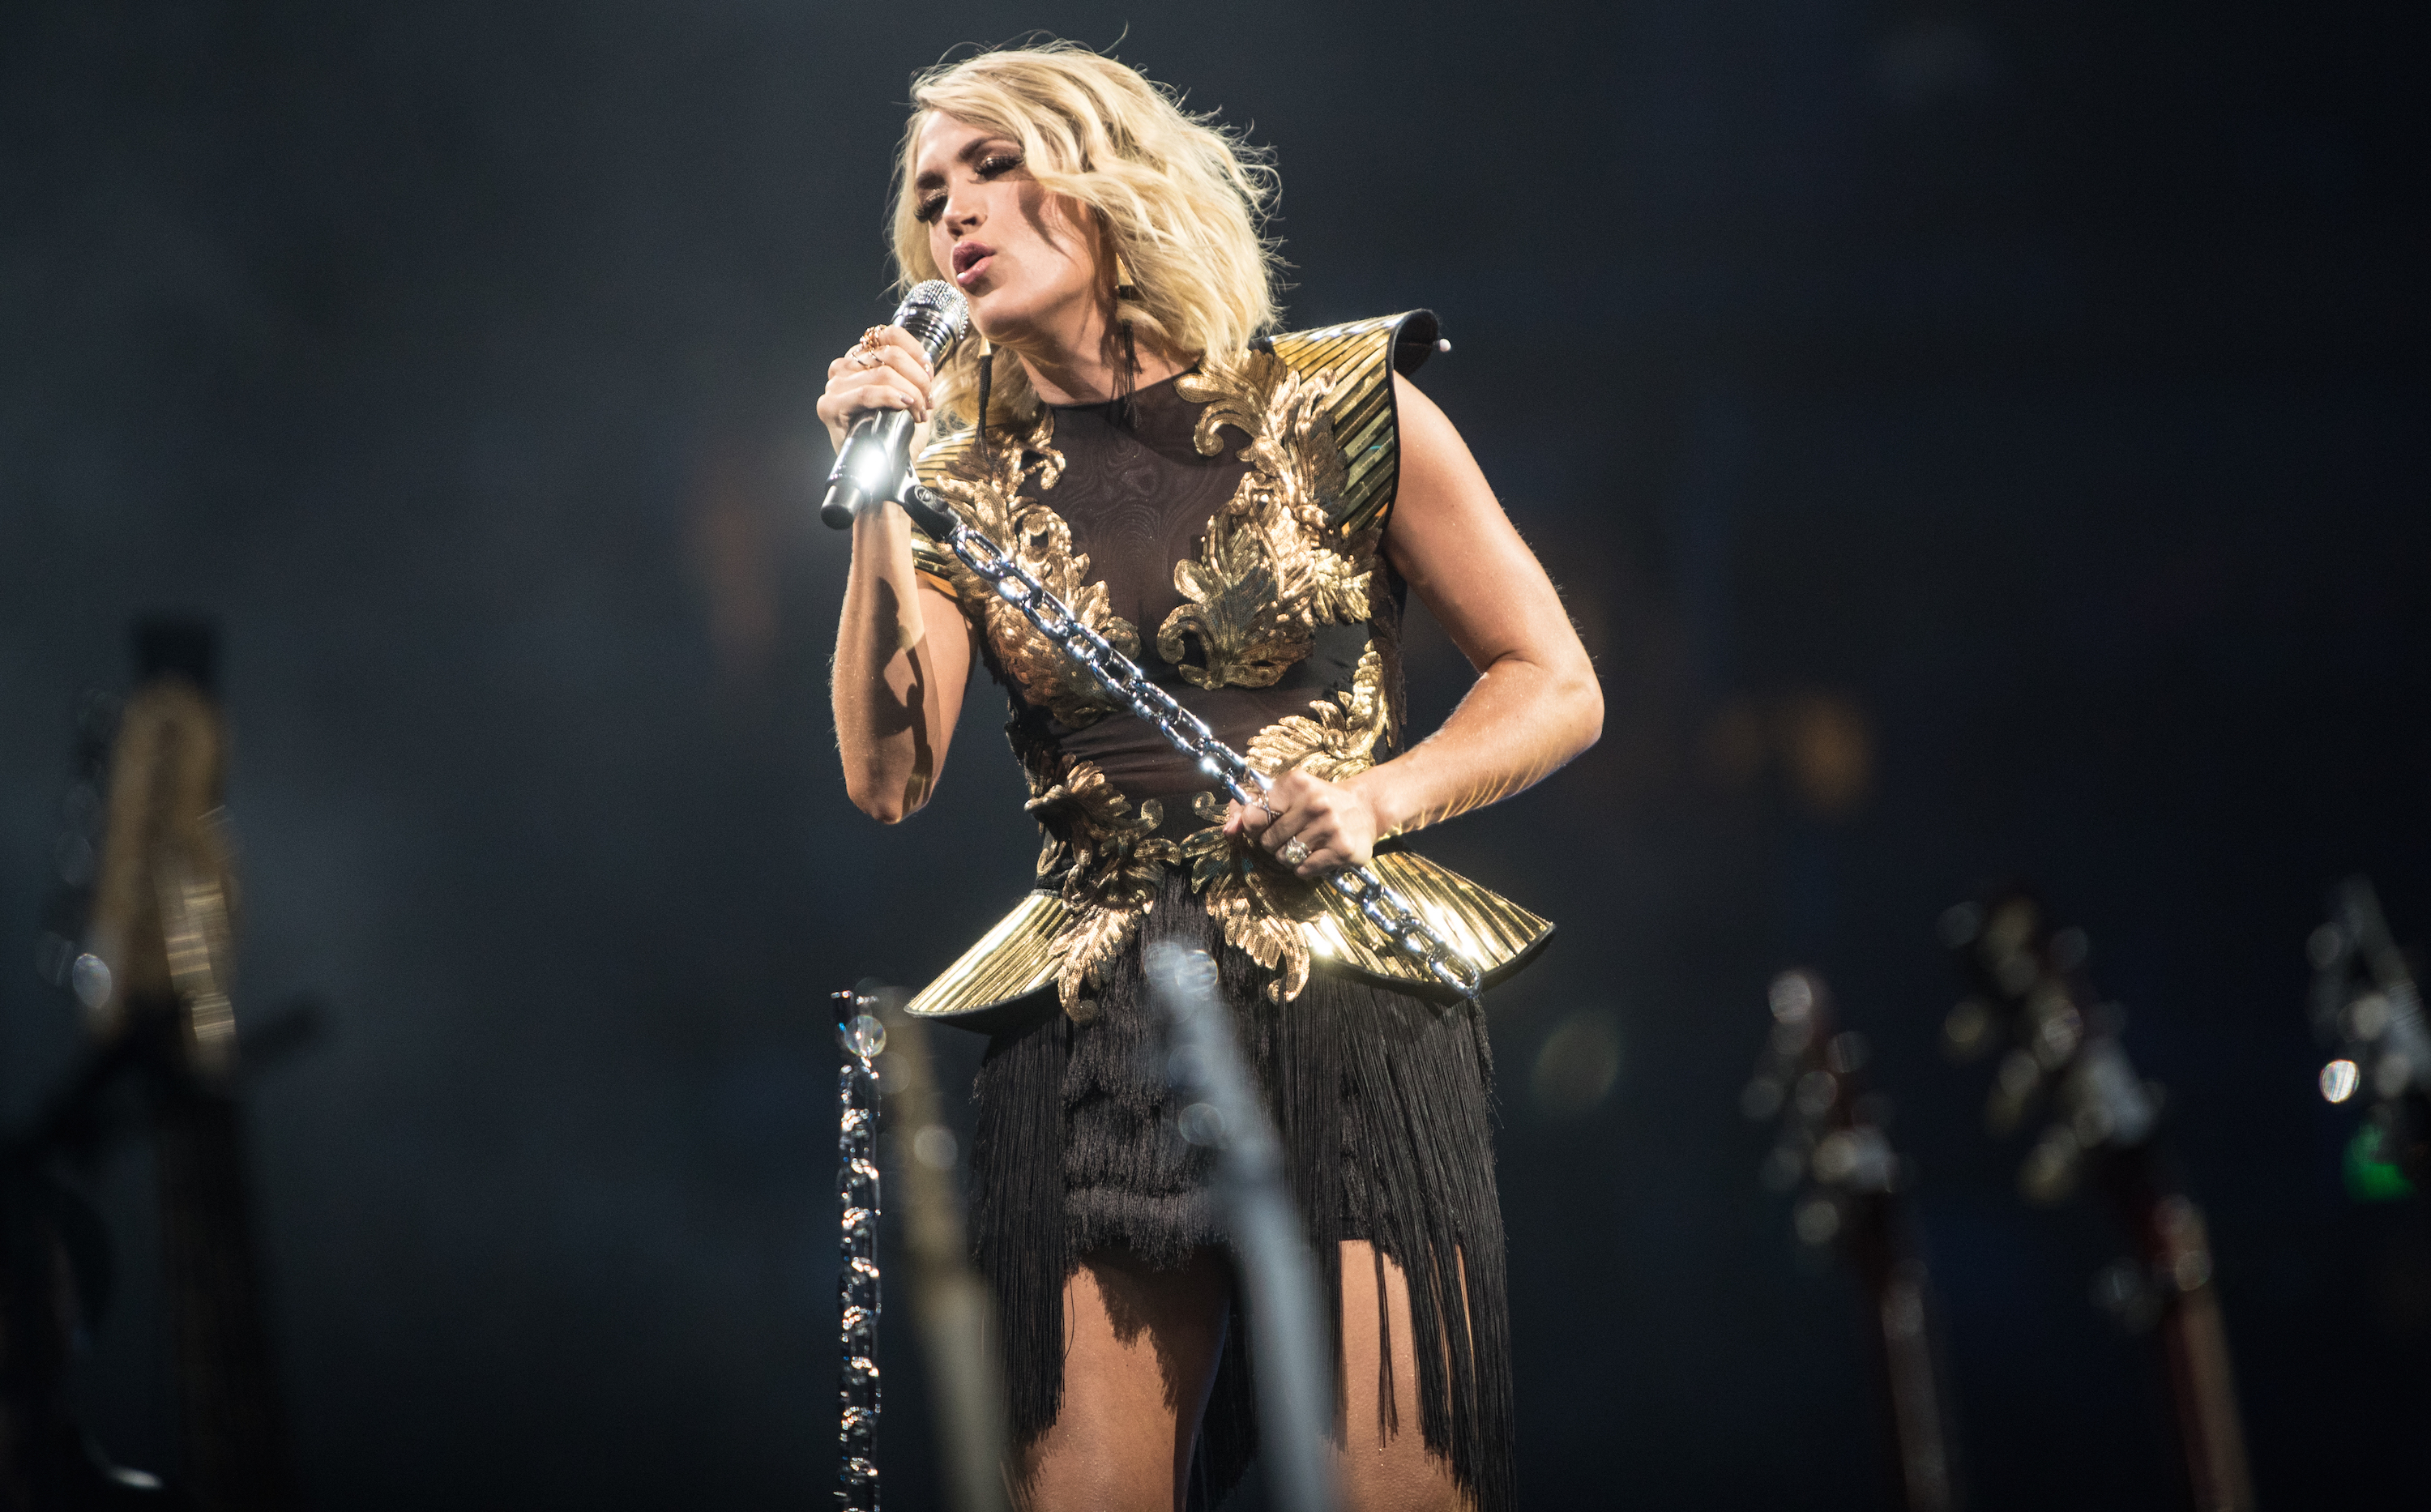 Listen to Carrie Underwood's empowering new single, 'Cry Pretty'